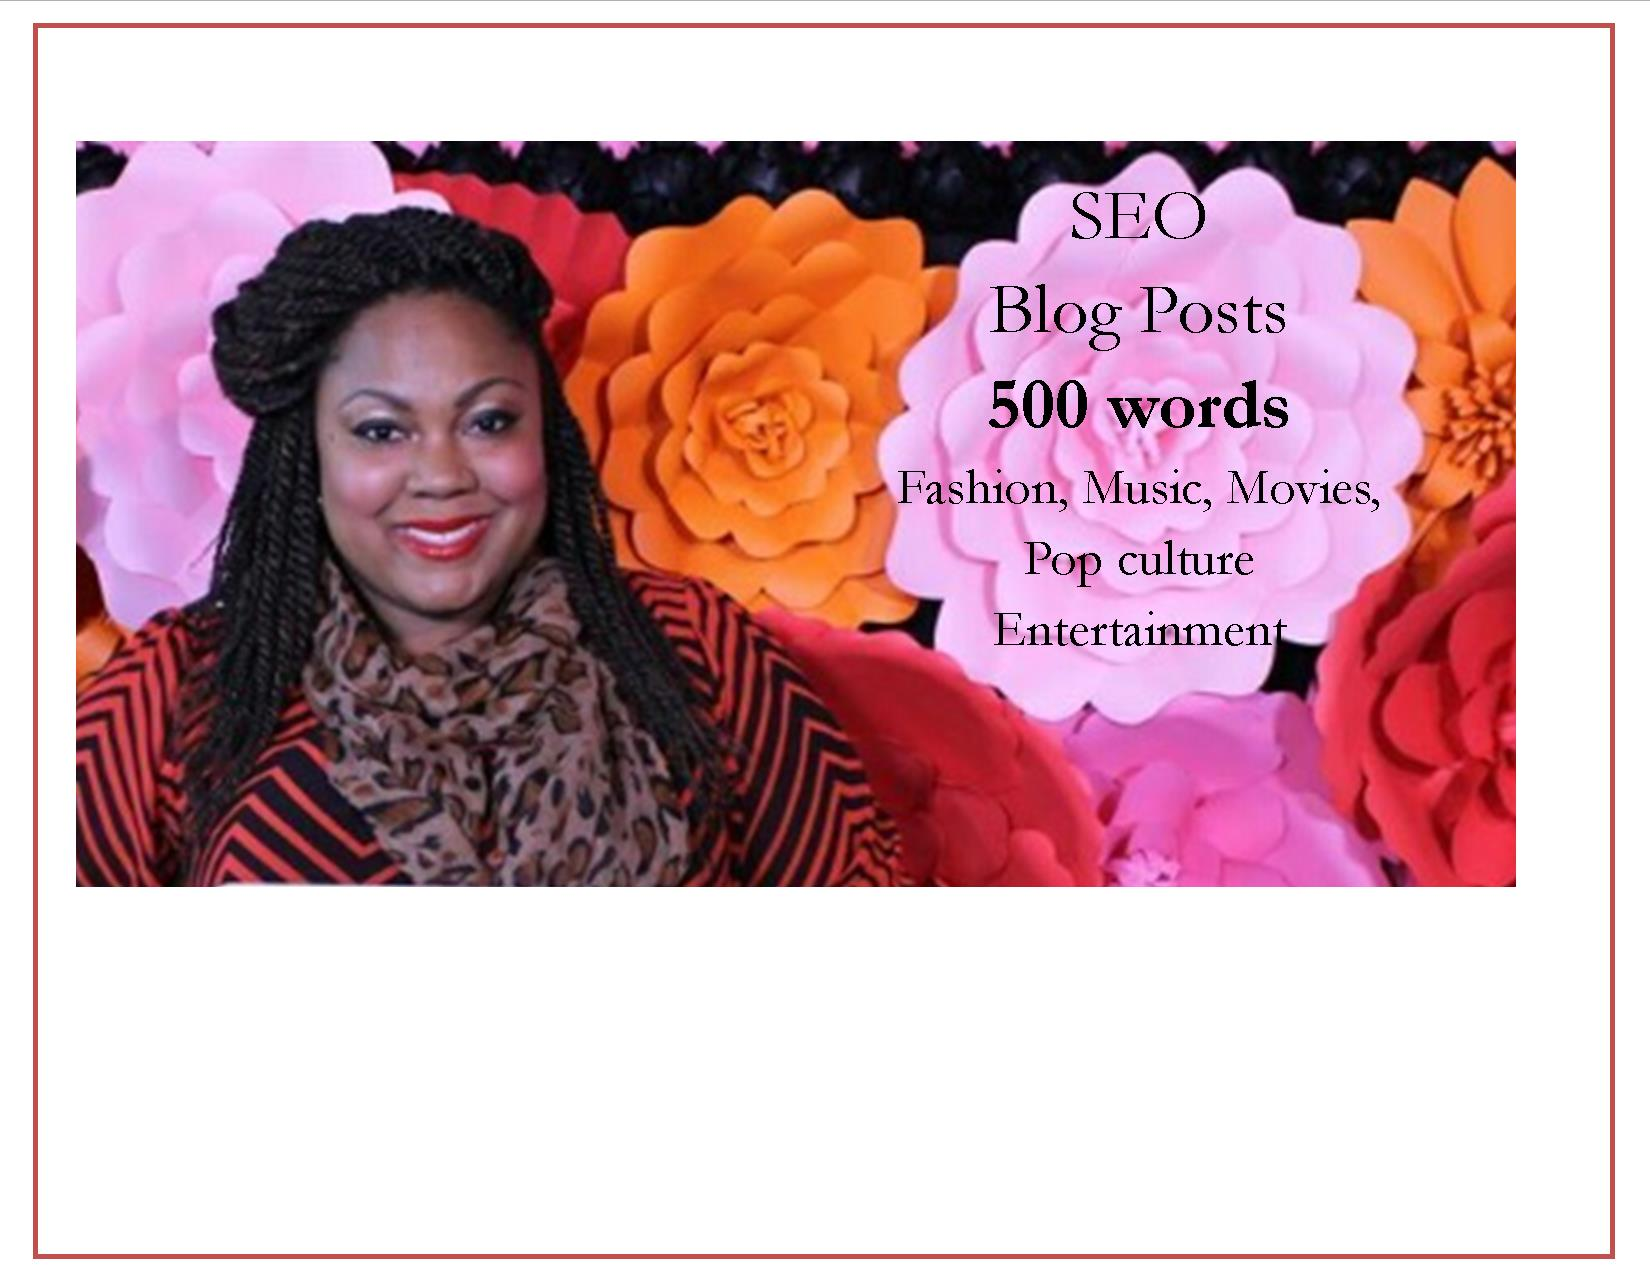 write a 500 word SEO post on fashion, entertainment or music & include 1 royalty free image